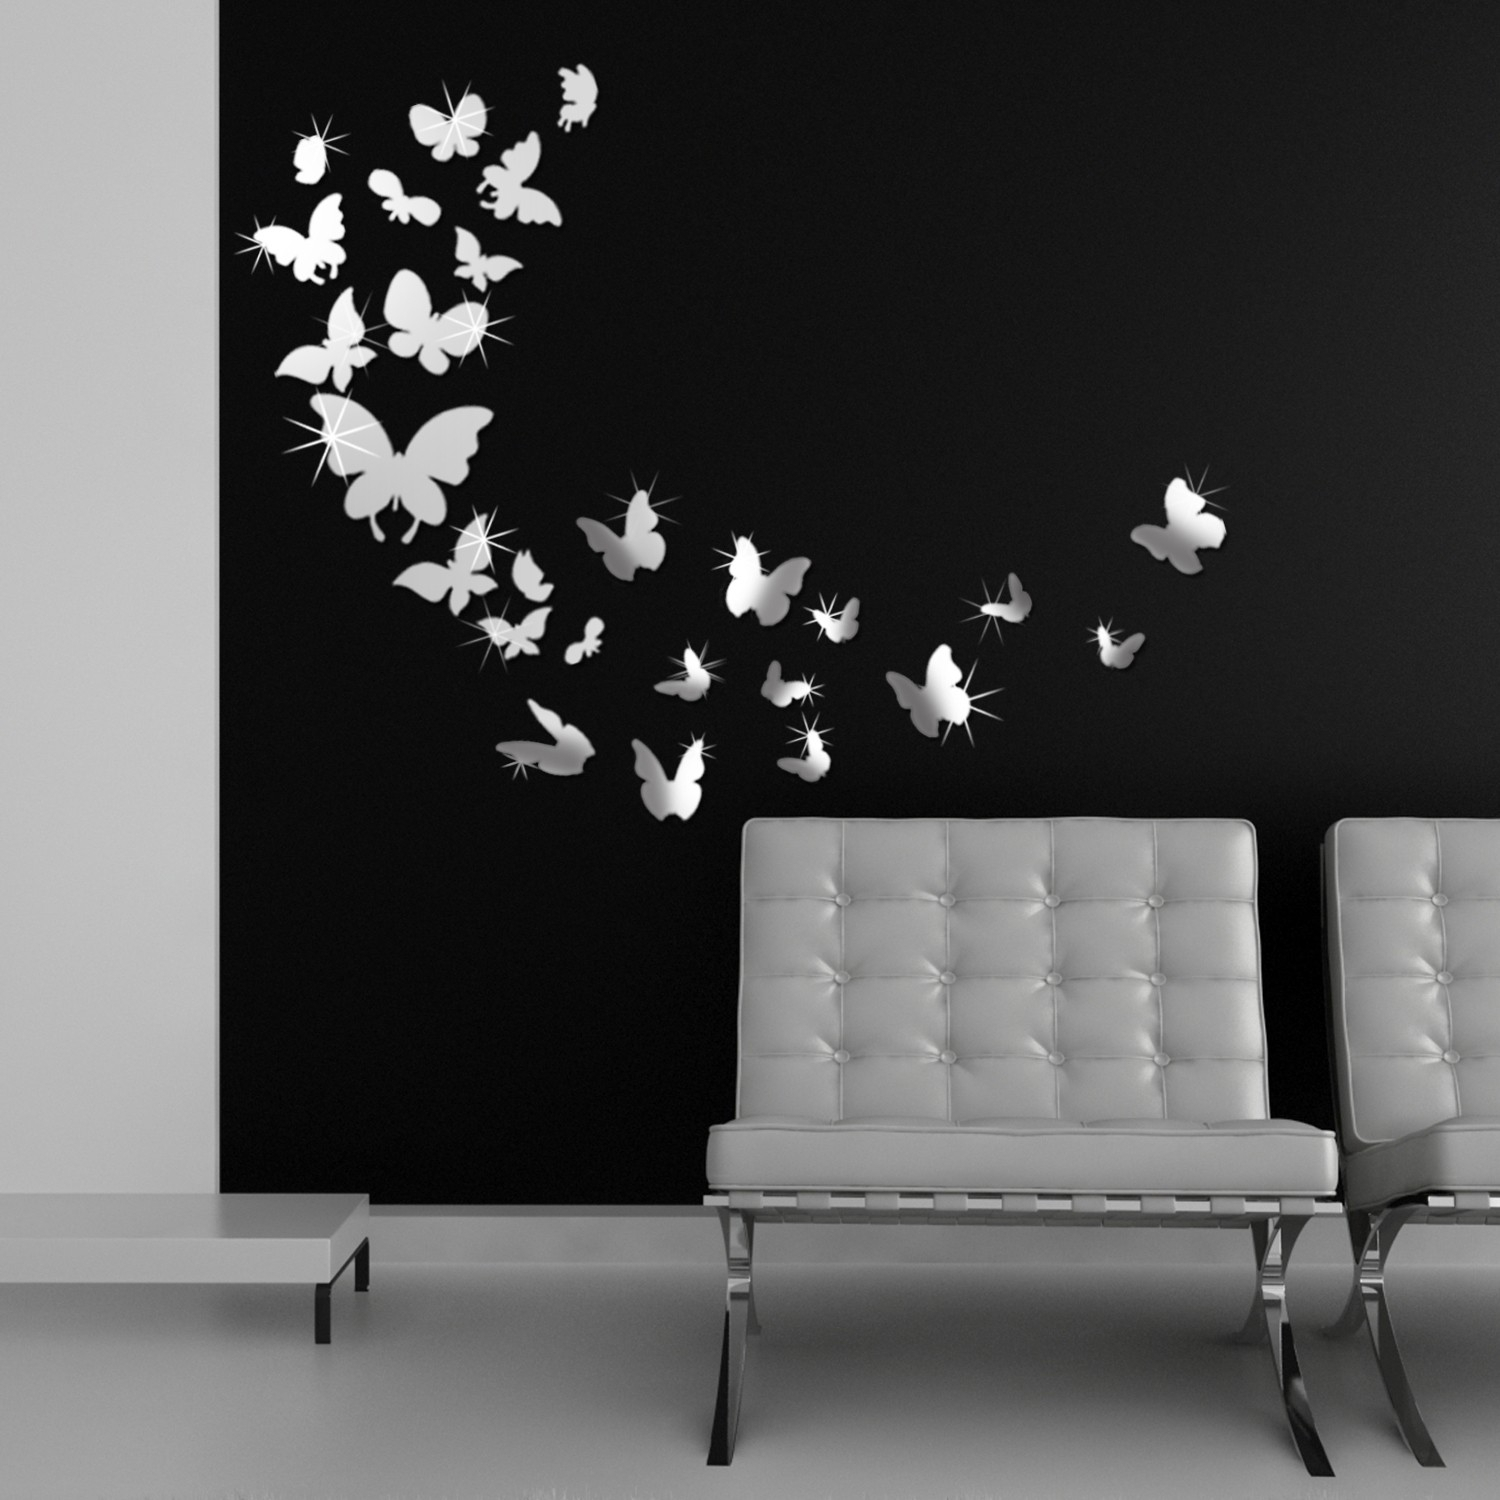 Black Wall Art Popular Black Wall Art – Wall Decoration Ideas Pertaining To Most Recent Black Wall Art (View 8 of 20)